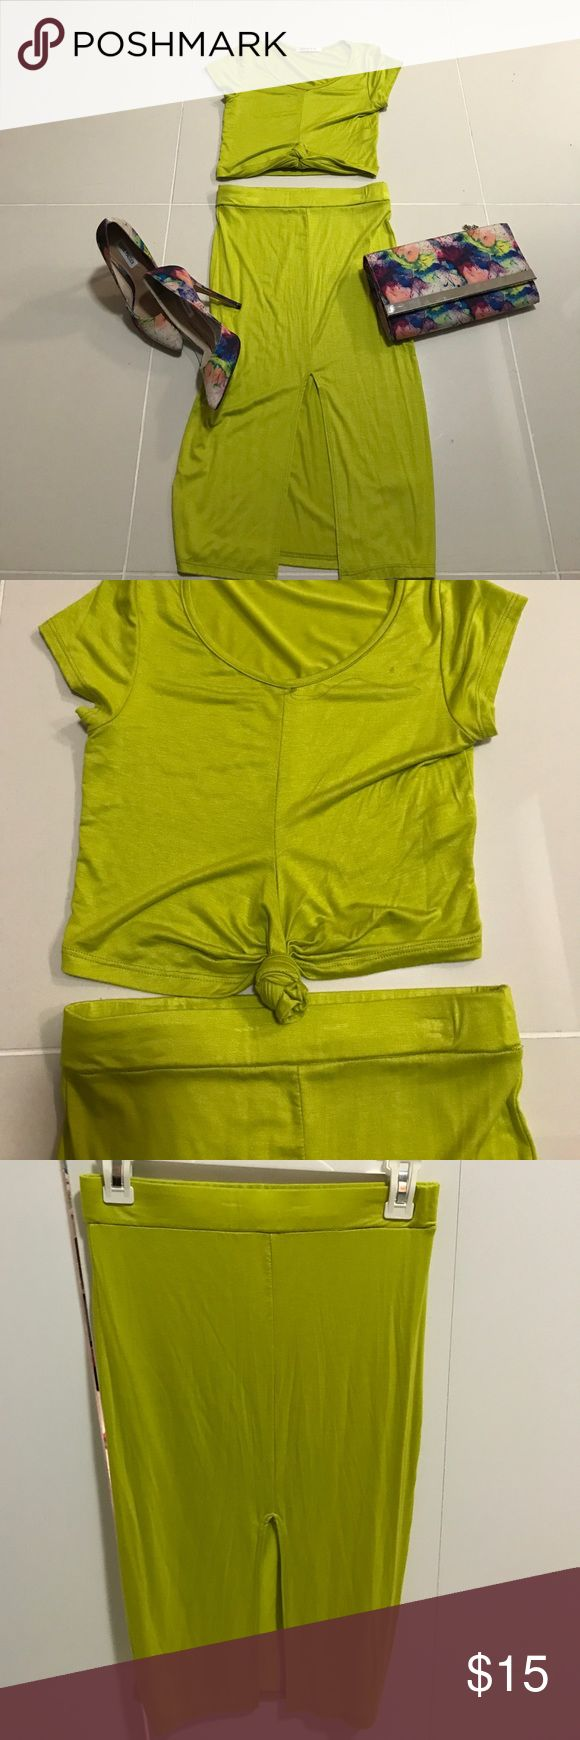 2 piece lime green skirt set 2 piece lime green skirt set. Crop top with knotted front tie. Never worn. Medium. Summer and spring appropriate. For a night out or dress it up with a blazer! Other